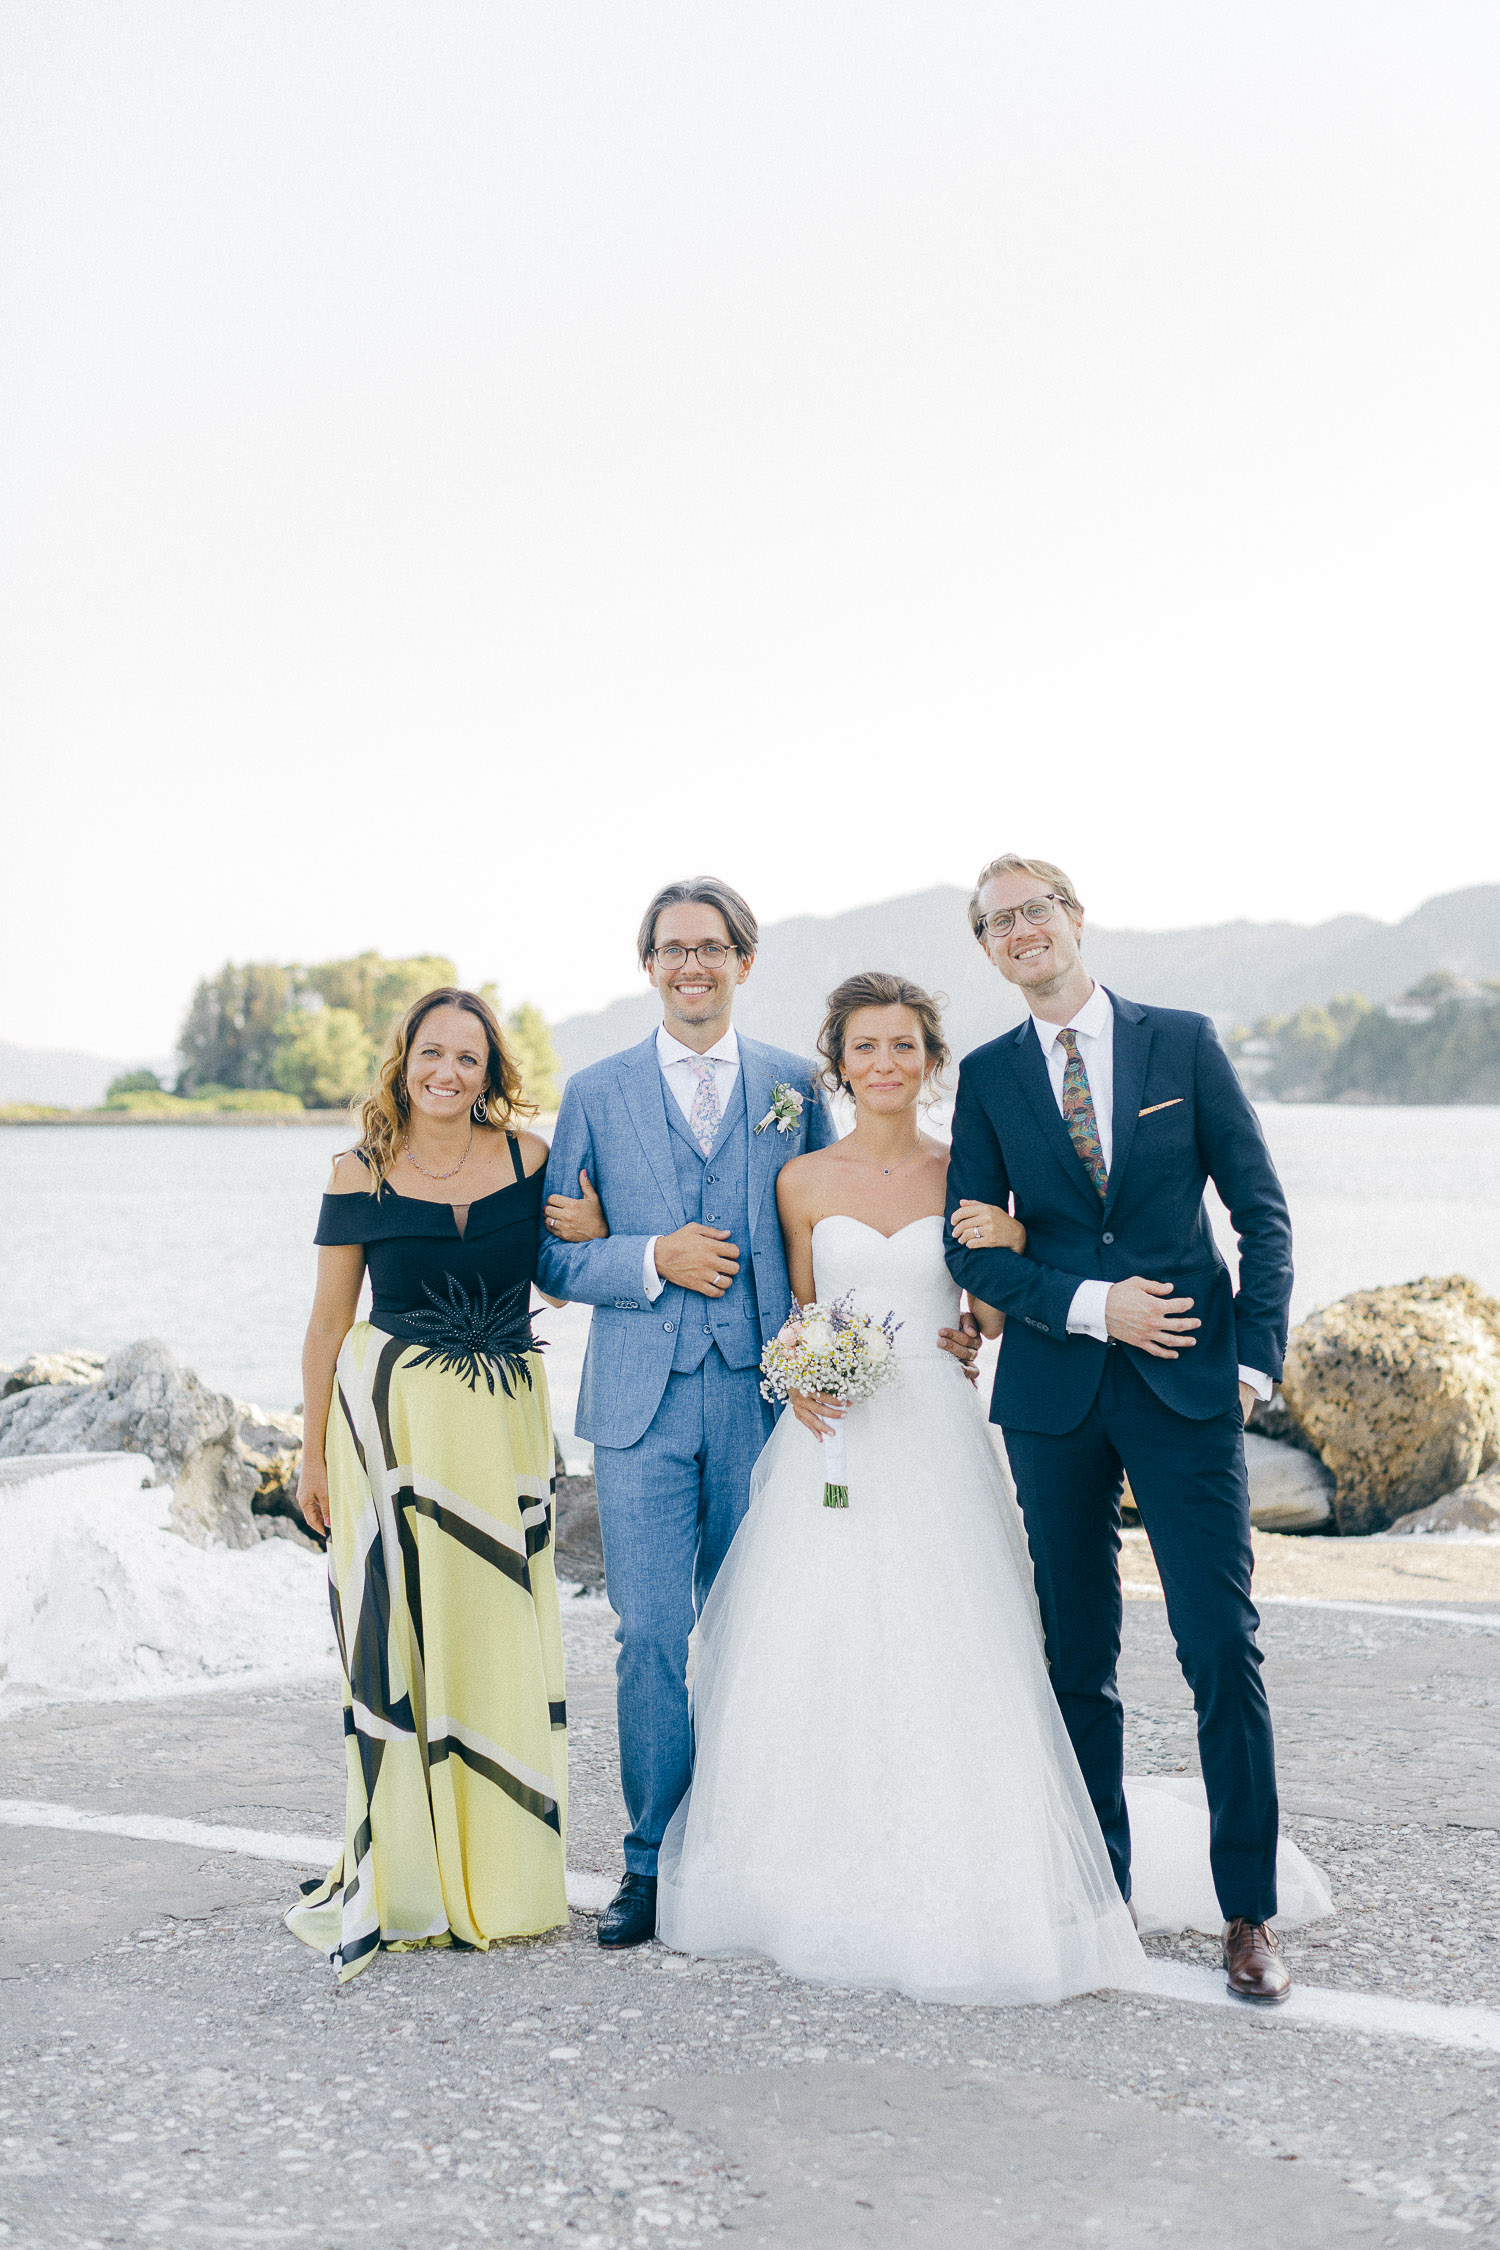 Family wedding photos after ceremony at Old World micro wedding in Corfu Island